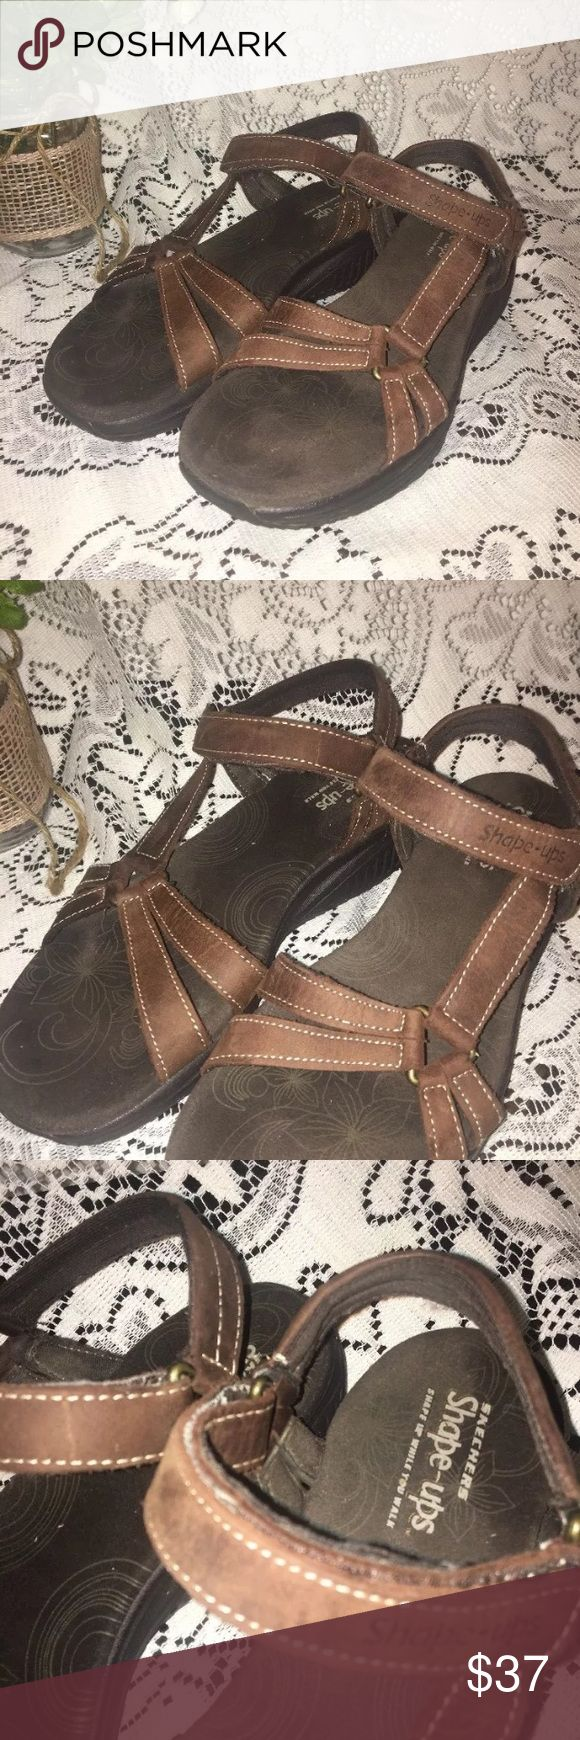 sketchers shape ups brown walking sandals size 8M Sketchers brown shape ups size 8M sandals shape ups Shoes Sandals